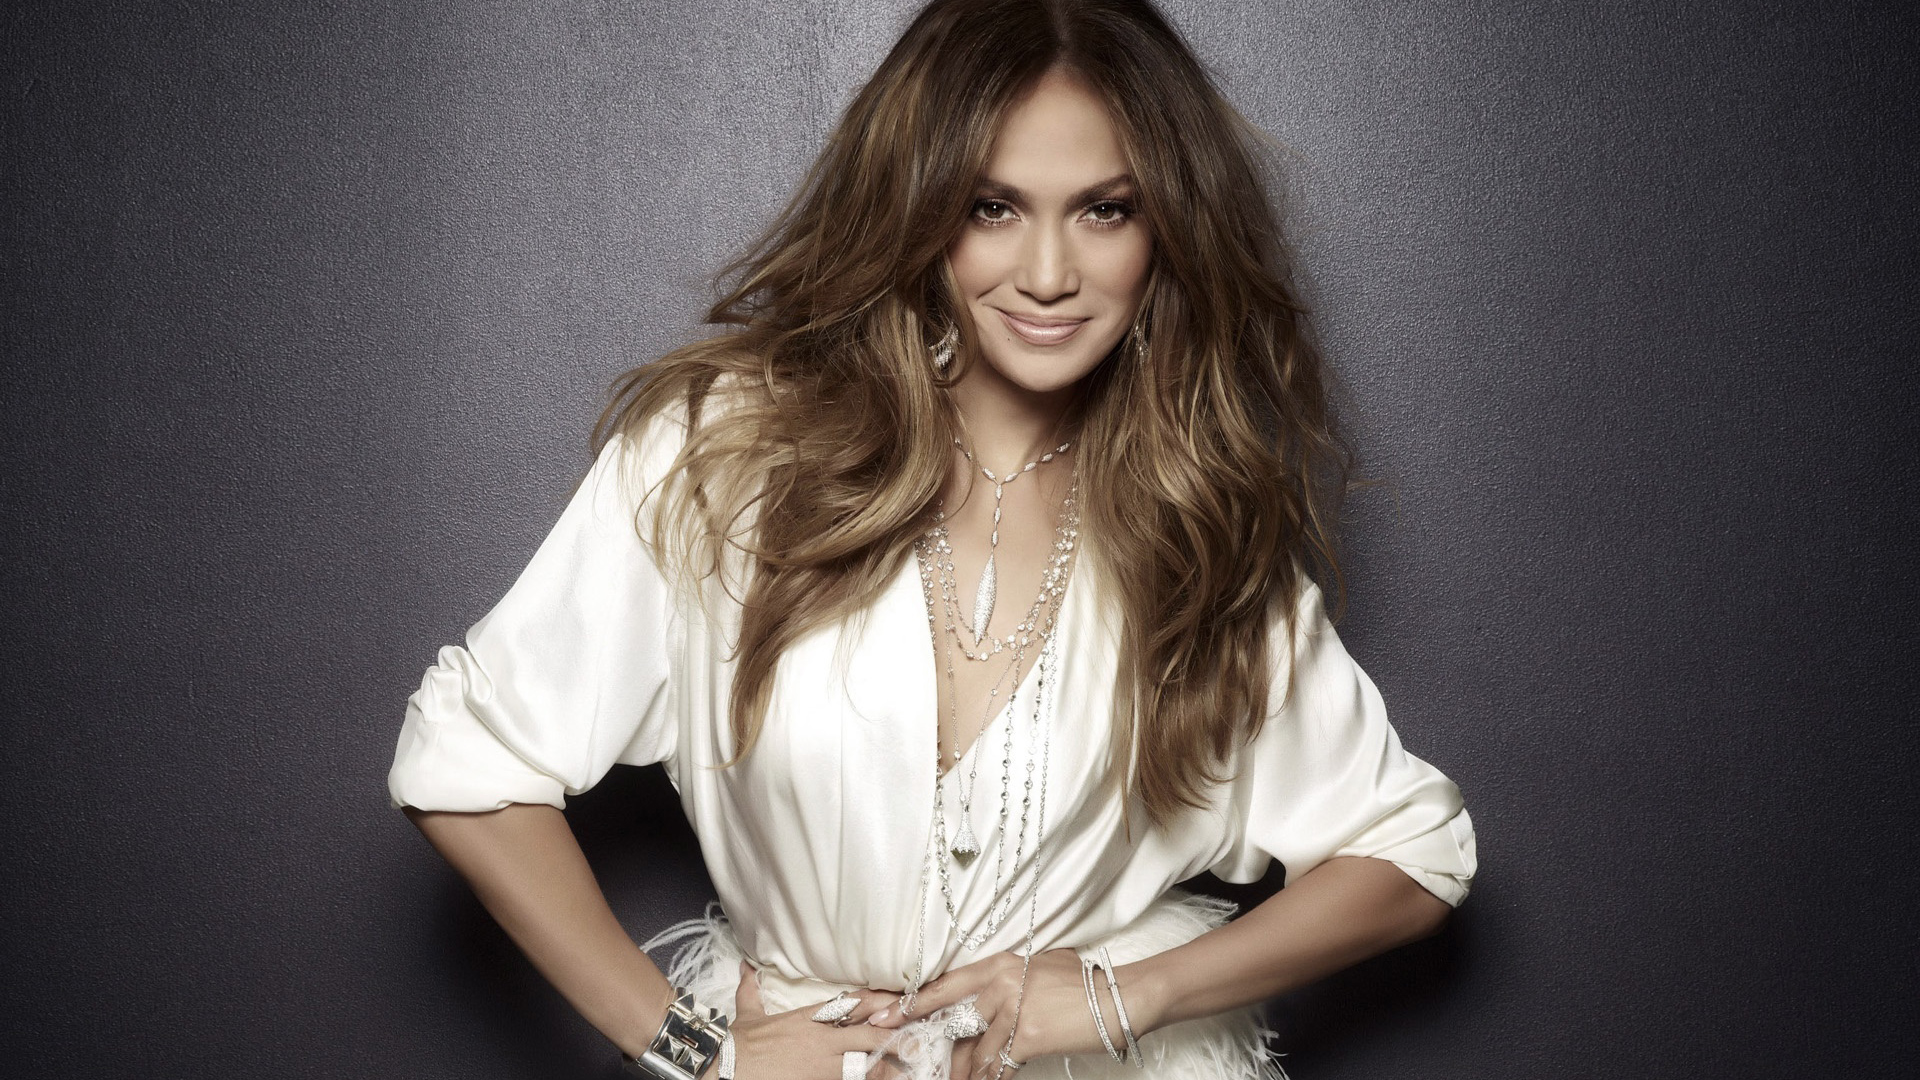 Jennifer Lopez 55 177.92 Kb